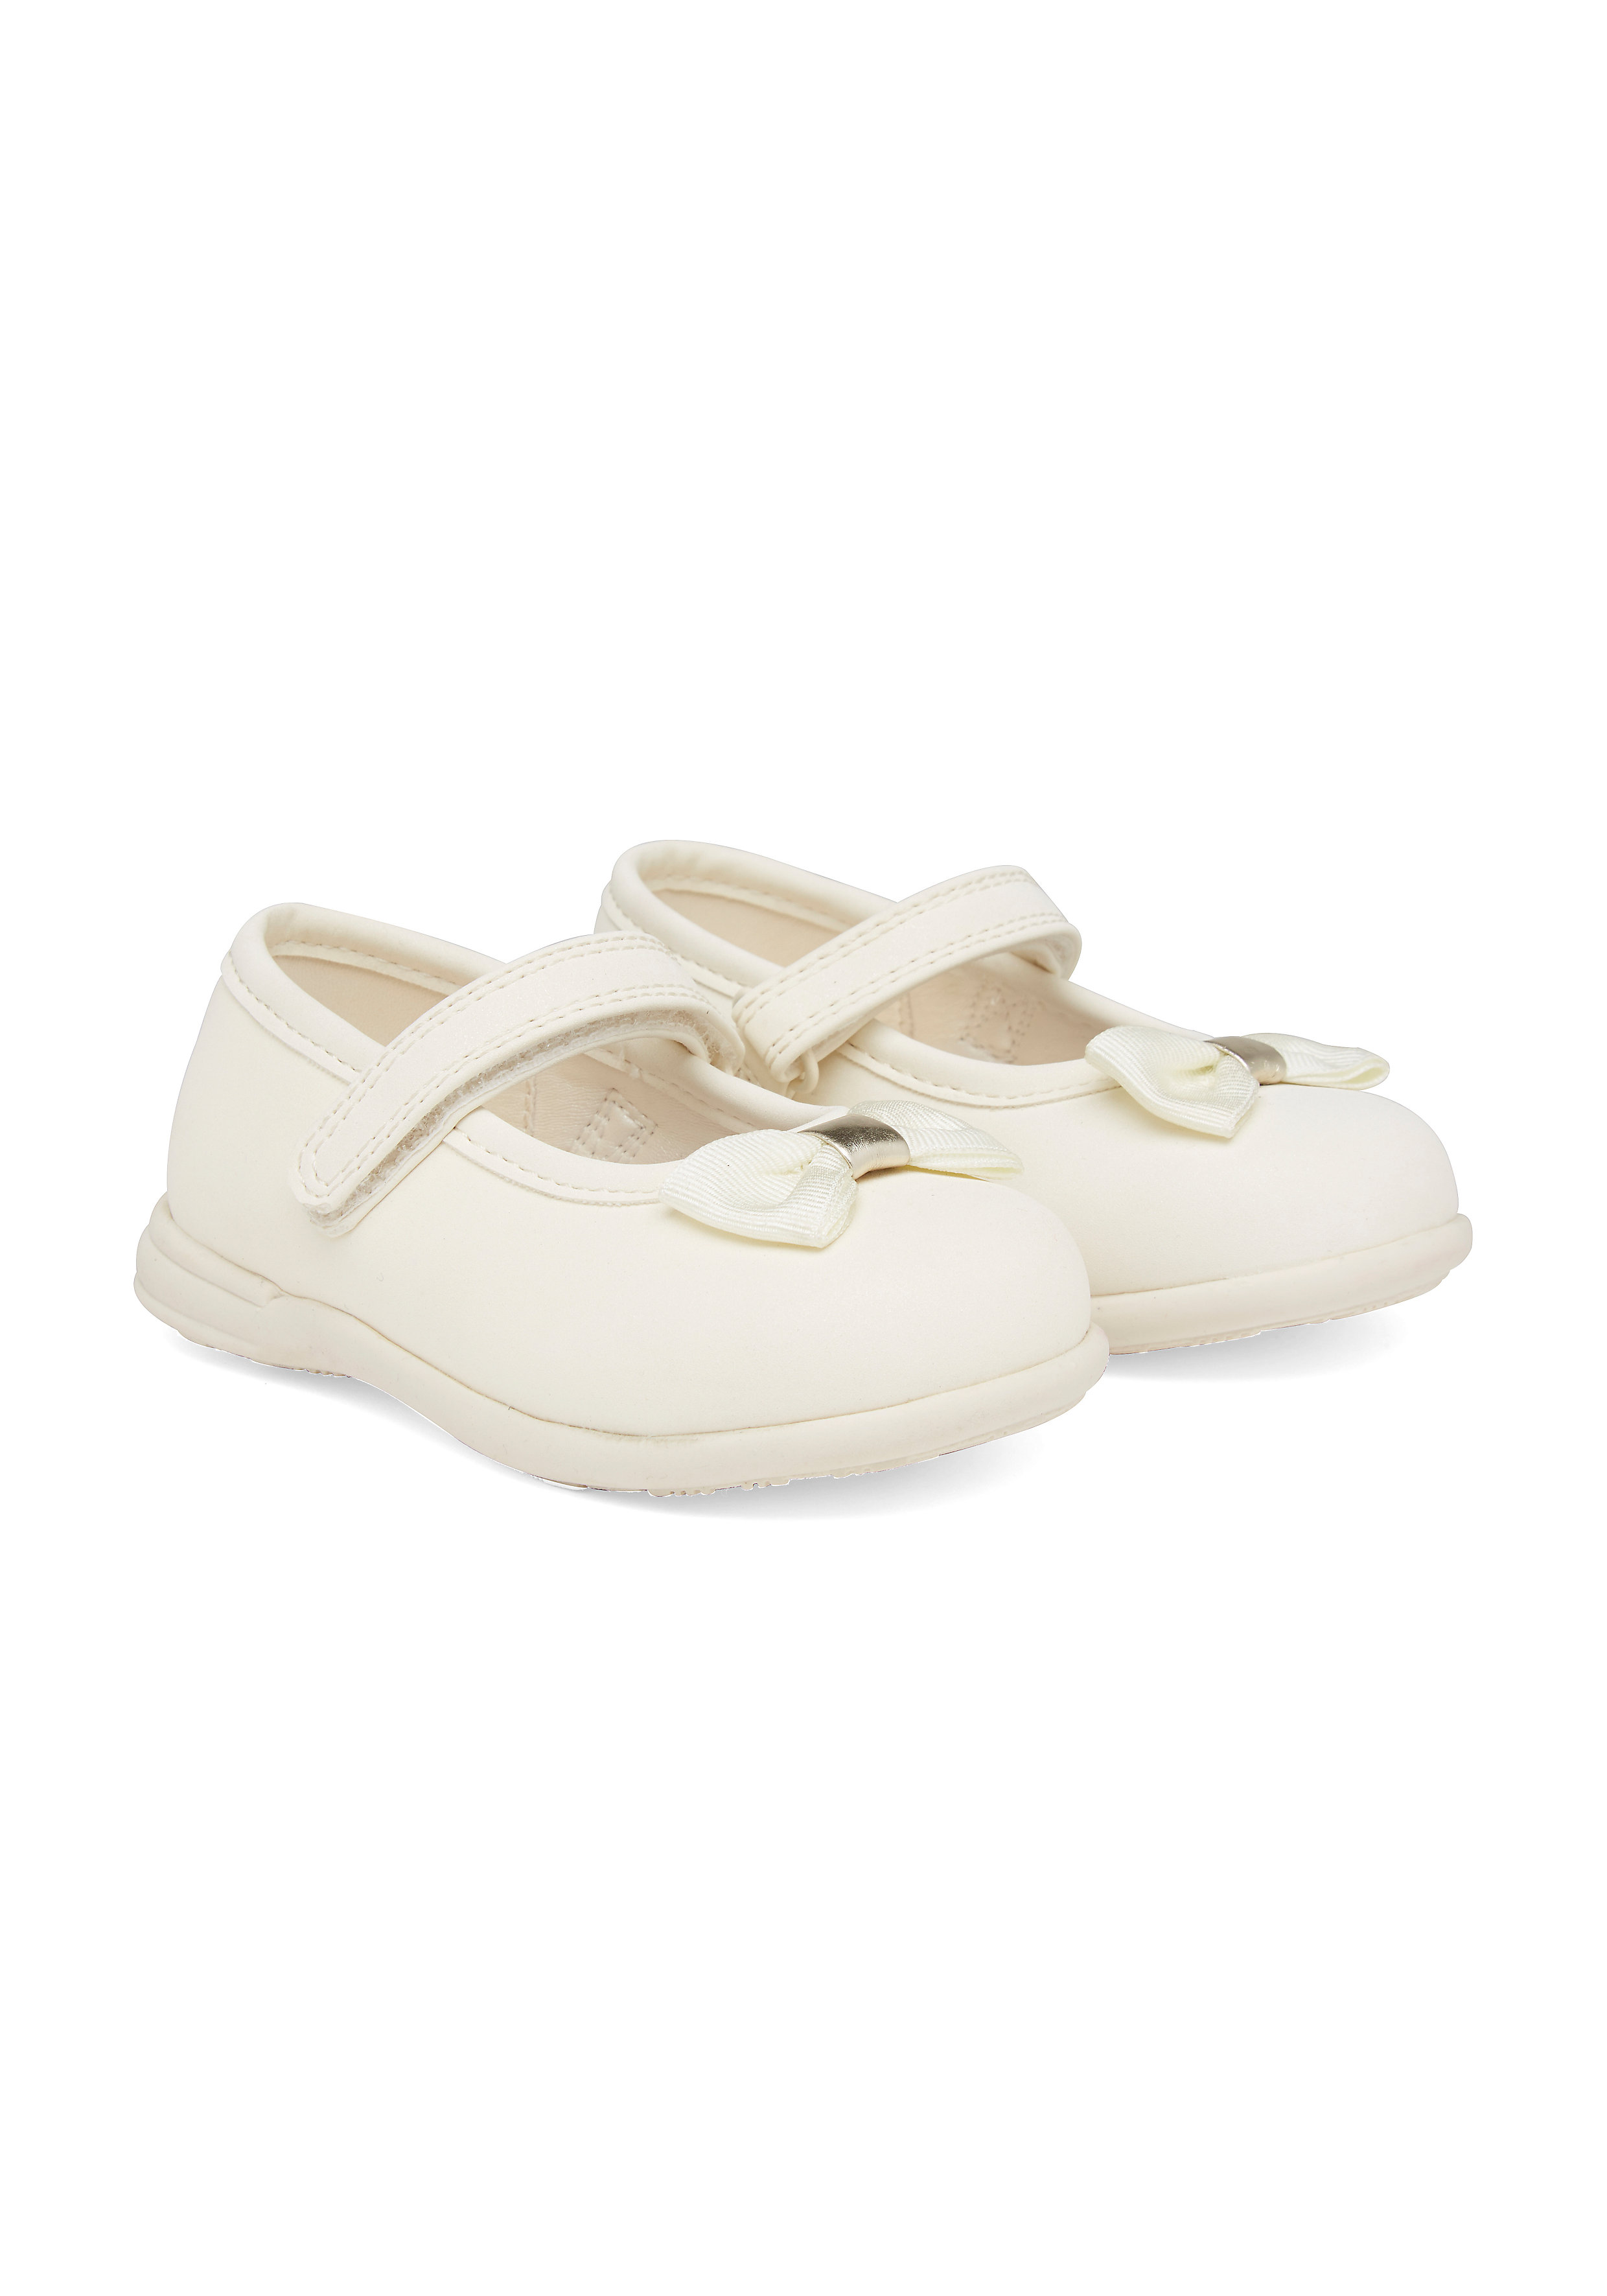 Mothercare   Girls First Walker Shoes Bow Detail - Cream